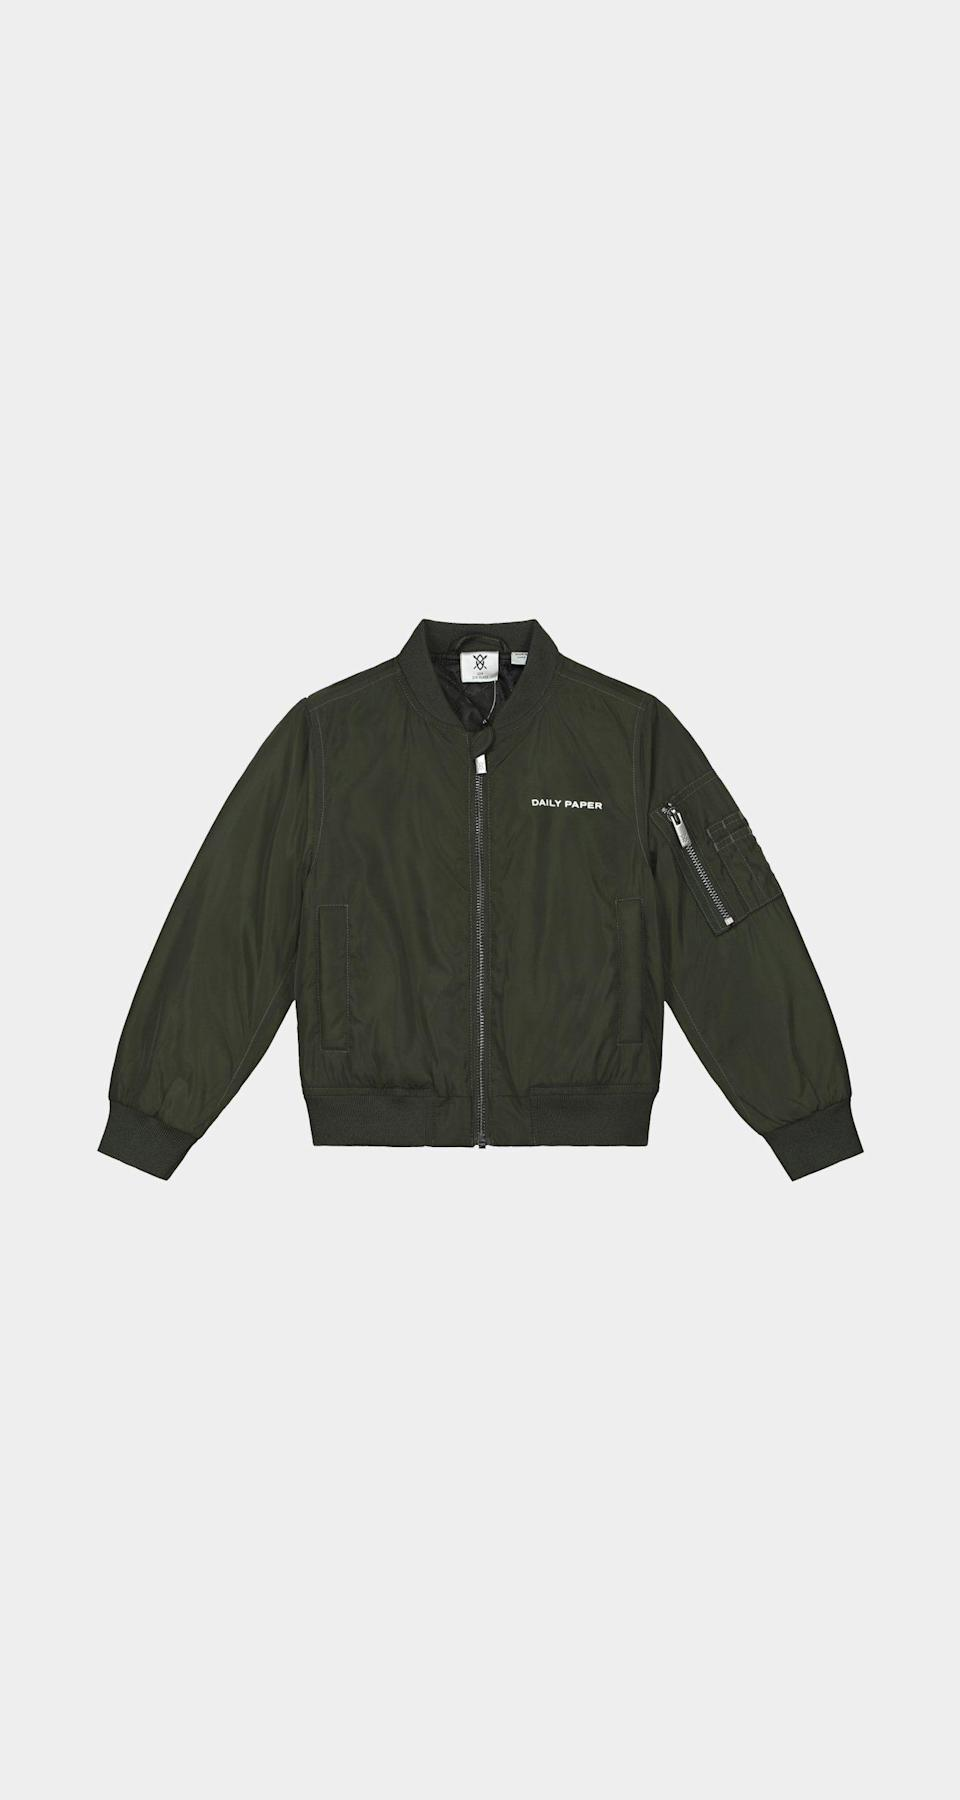 """<p><strong>kids</strong></p><p>dailypaperclothing.com</p><p><strong>132.00</strong></p><p><a href=""""https://www.dailypaperclothing.com/collections/kids-line/products/green-kids-bomber-jacket?variant=34888662679686"""" rel=""""nofollow noopener"""" target=""""_blank"""" data-ylk=""""slk:Shop Now"""" class=""""link rapid-noclick-resp"""">Shop Now</a></p><p>Bomb dot com. </p>"""